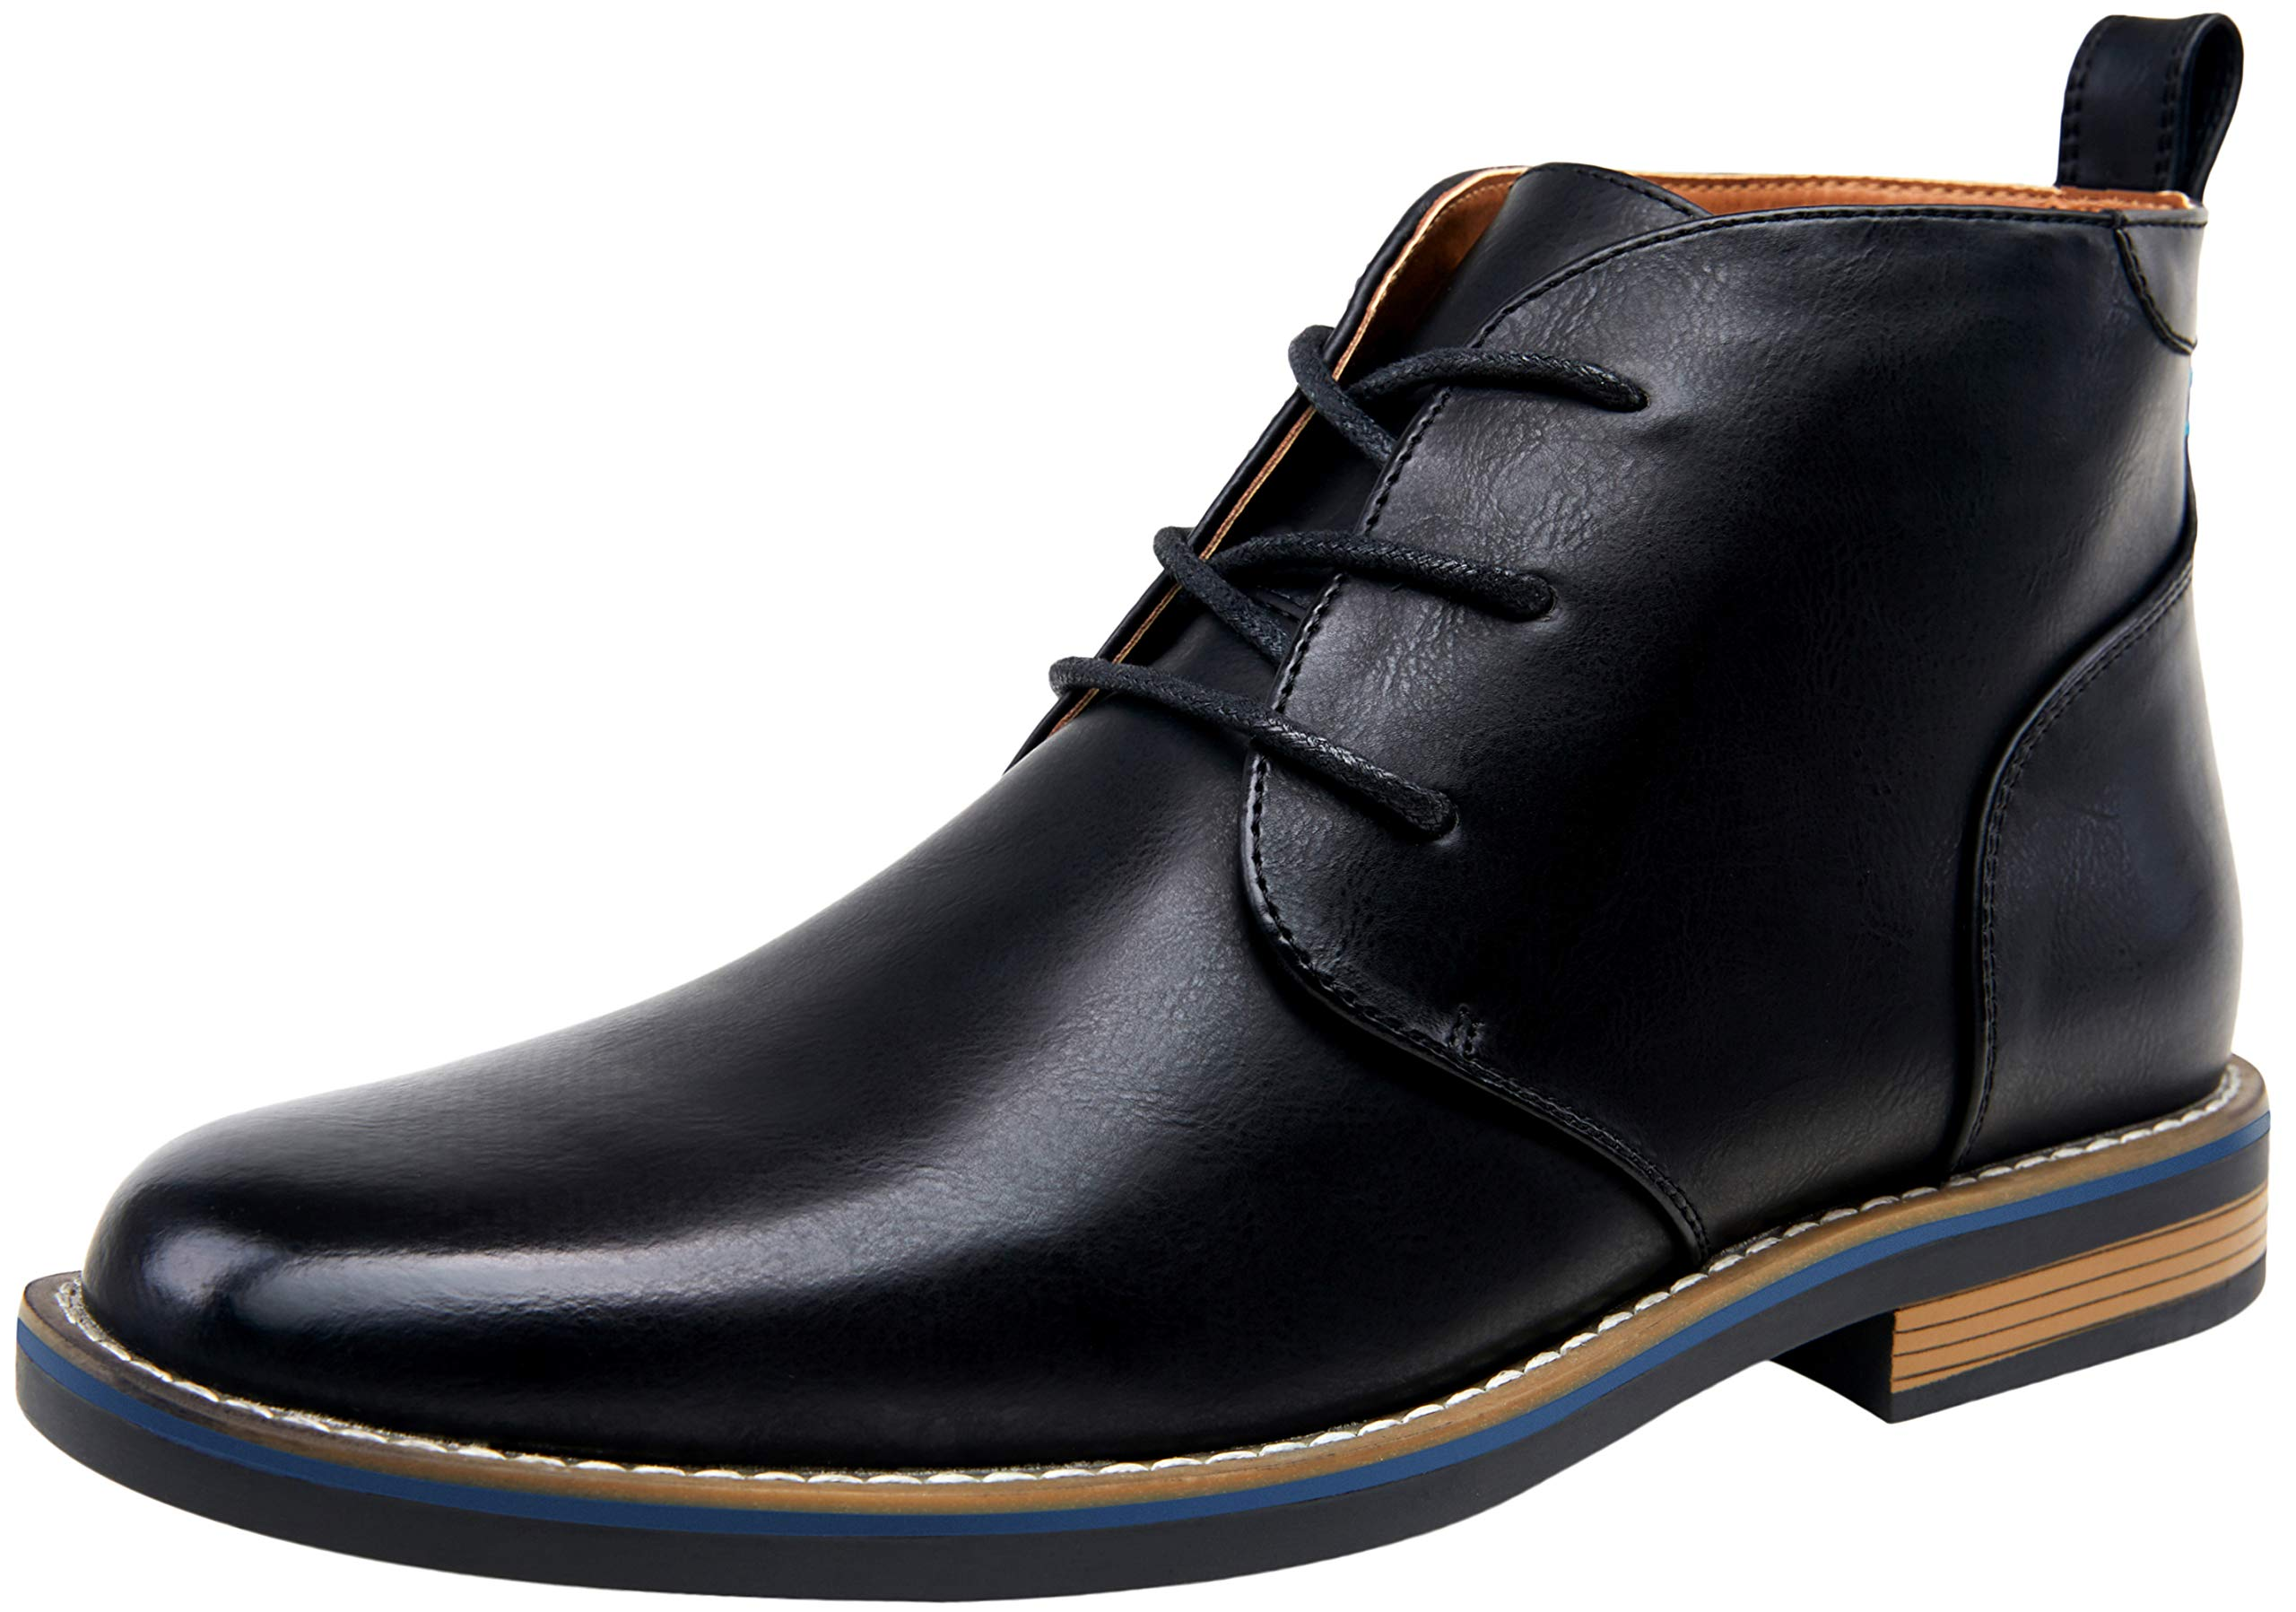 JOUSEN Men's Dress Boot Plain Toe Chukka Boots Fashion Ankle Boot for Men(11,Black) by JOUSEN